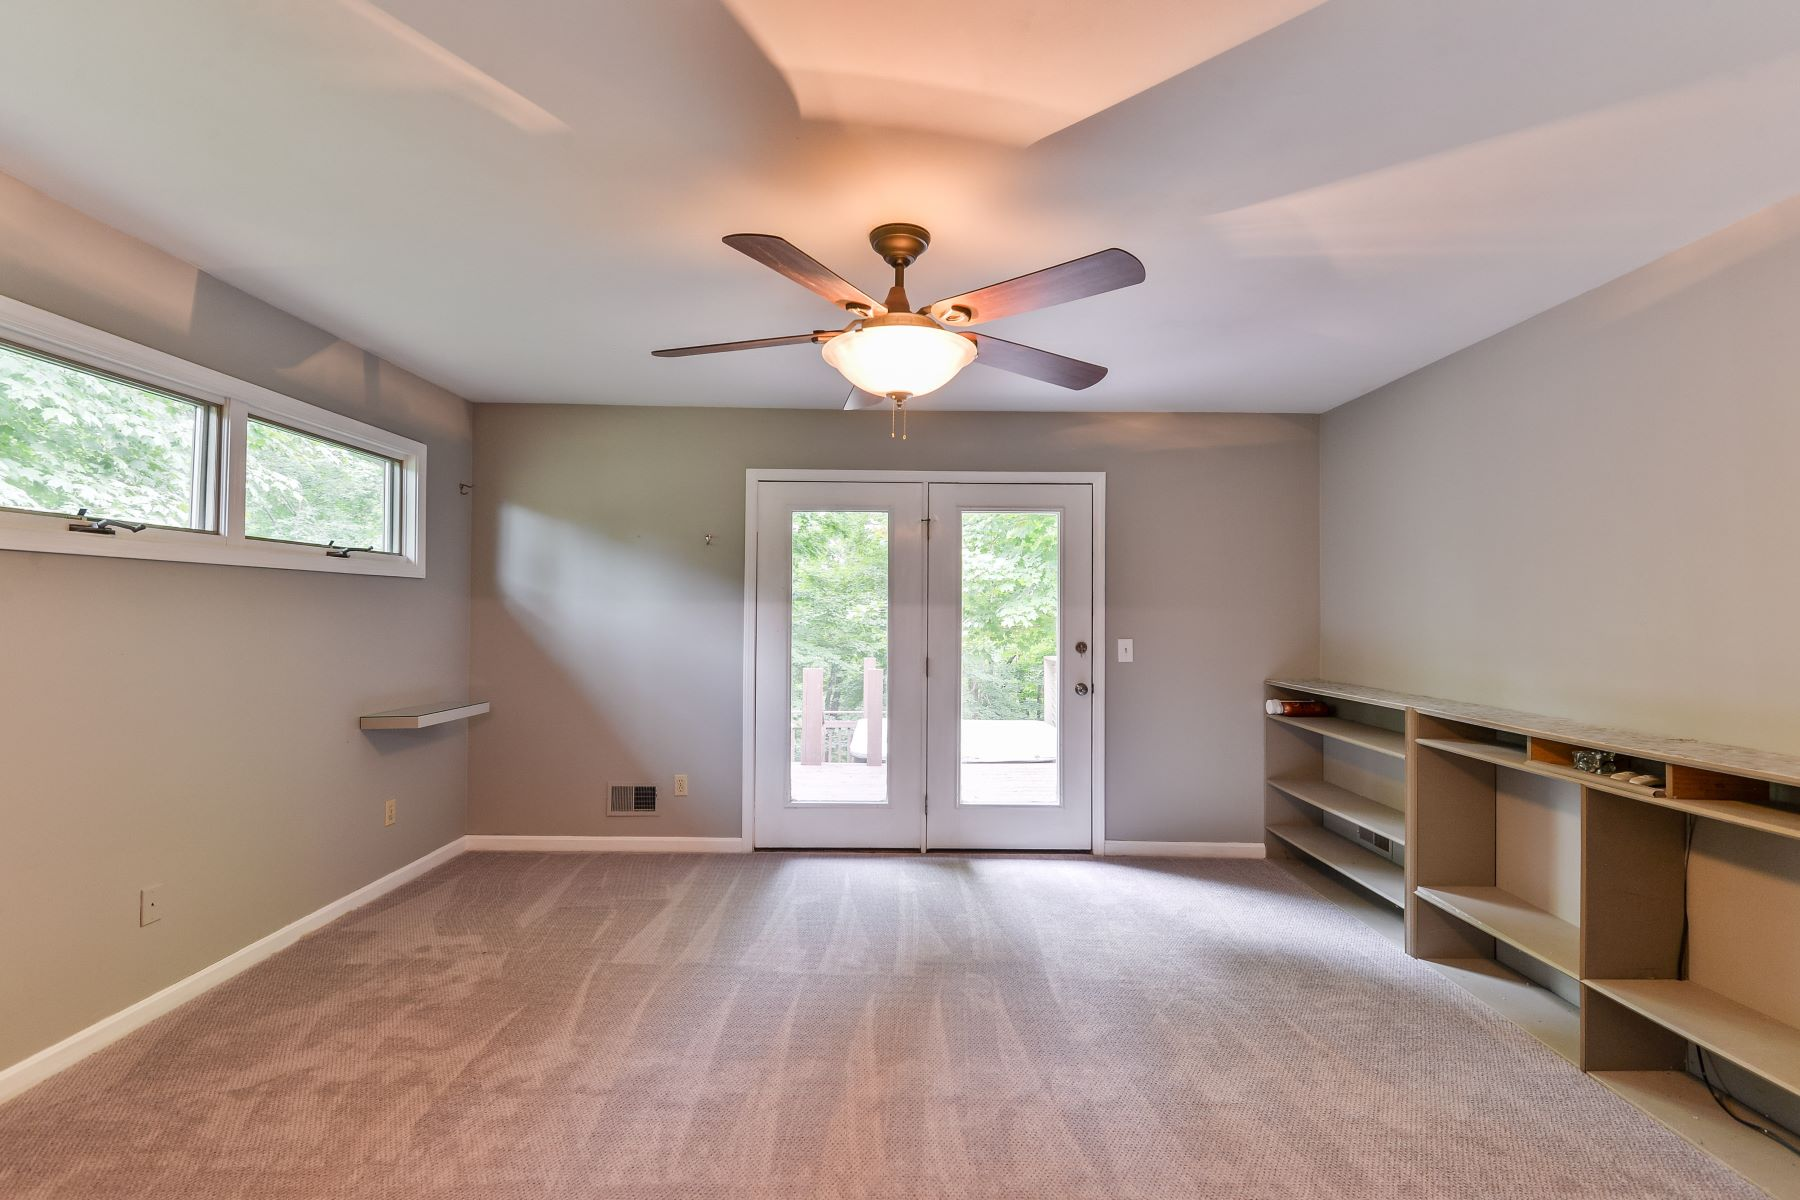 Additional photo for property listing at 3134 Brazil Lake Parkway  Georgetown, Indiana 47122 United States